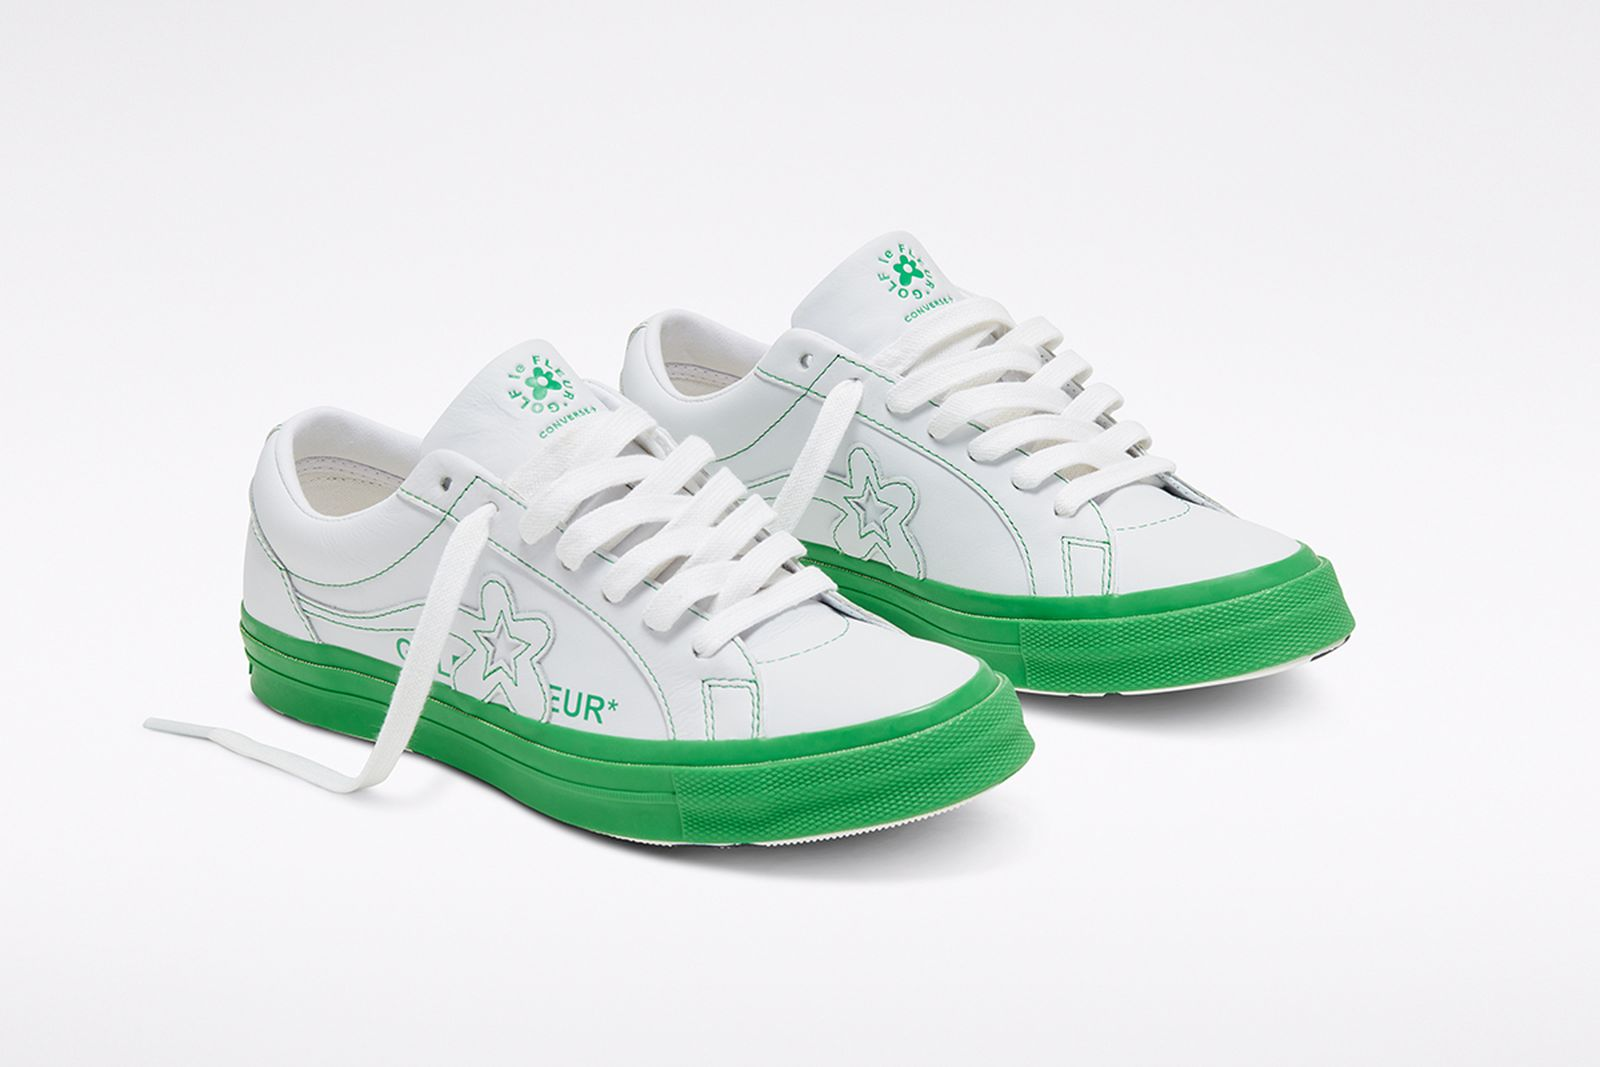 golf le fleur converse one star colorblock pack release date price Golf Le FLEUR* odd future tyler the creator